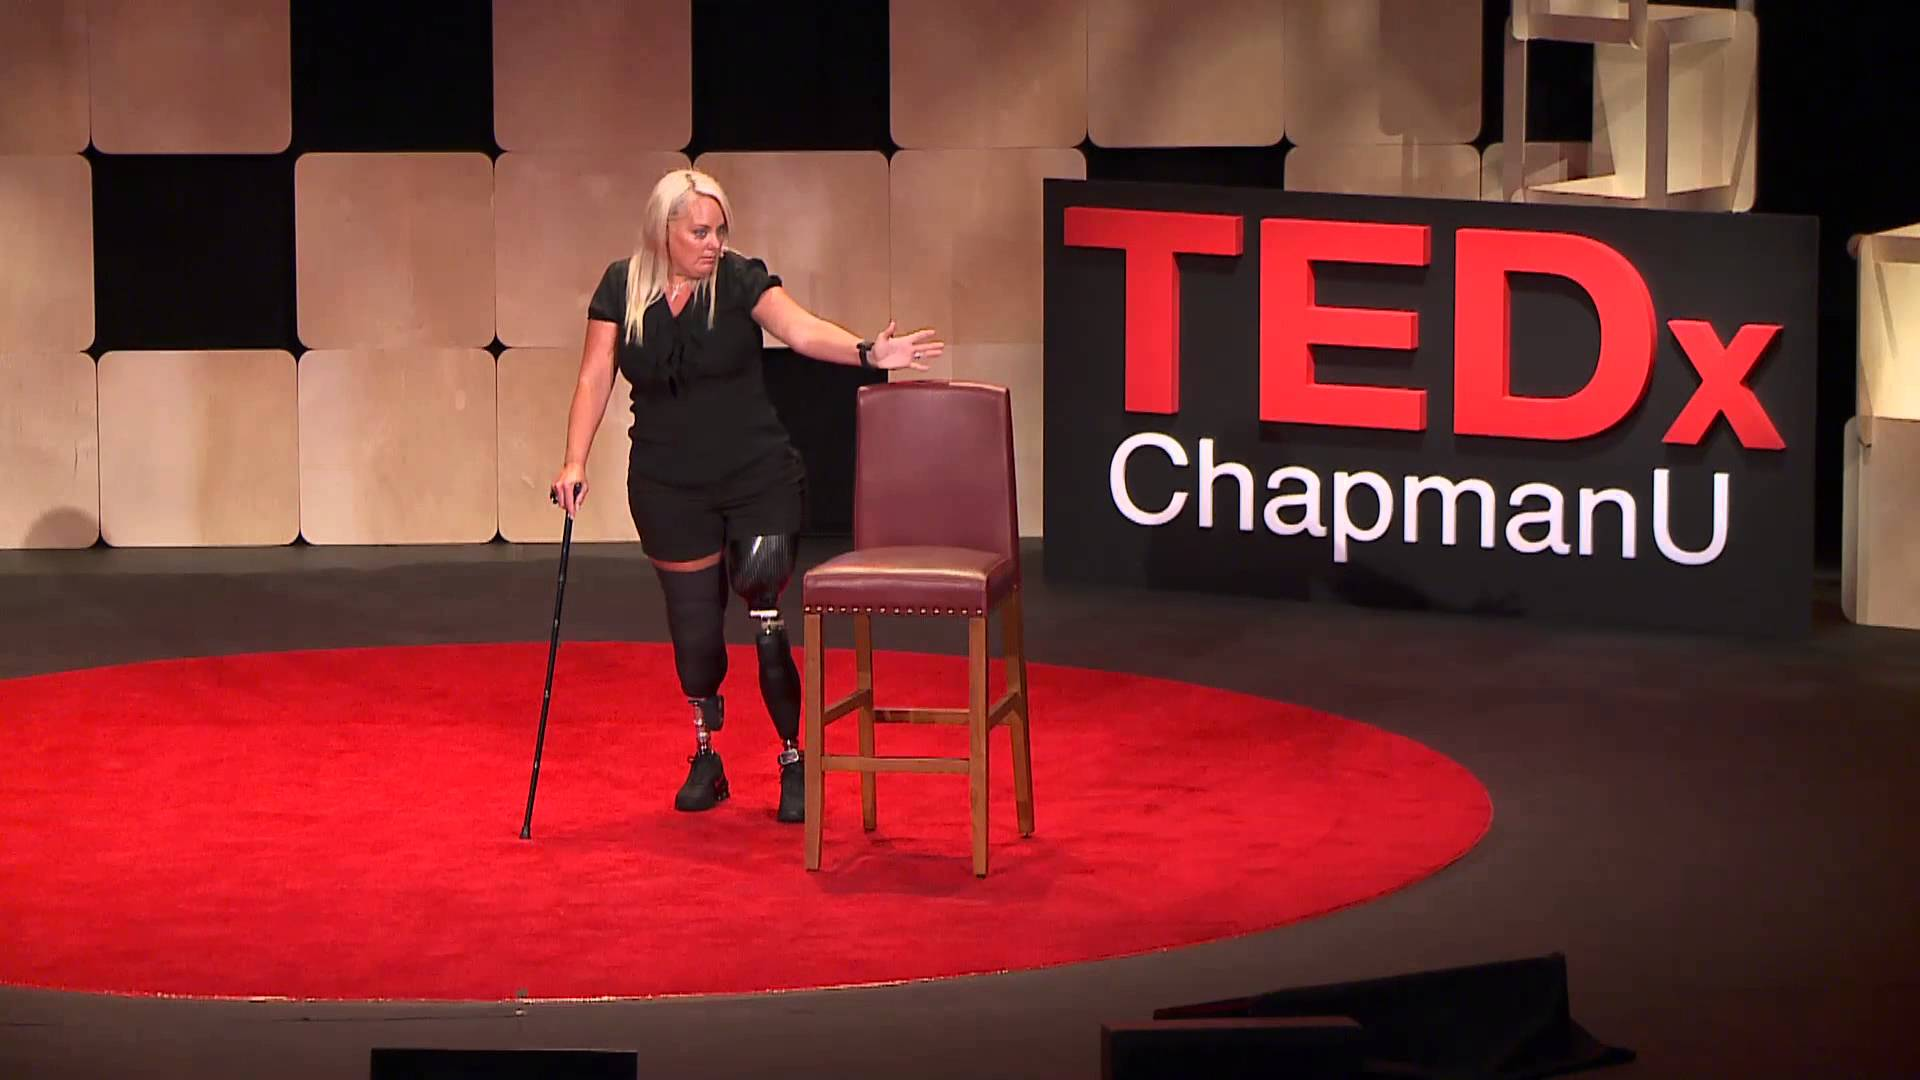 Stephanie Decker at TEDx ChapmanU in June 2014